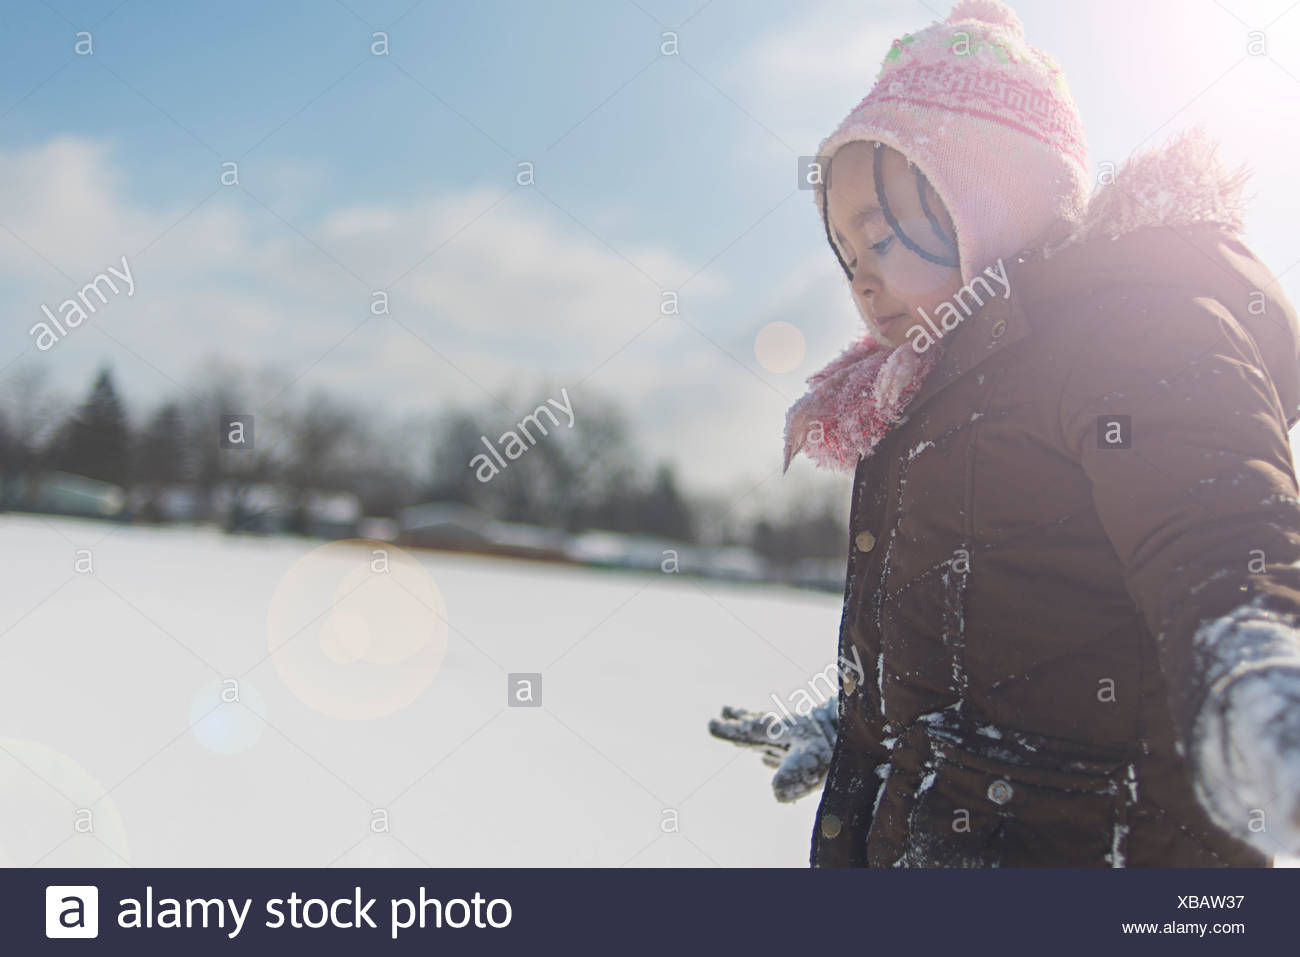 Young girl cautiously trying to walk in snow covered field - Stock Image